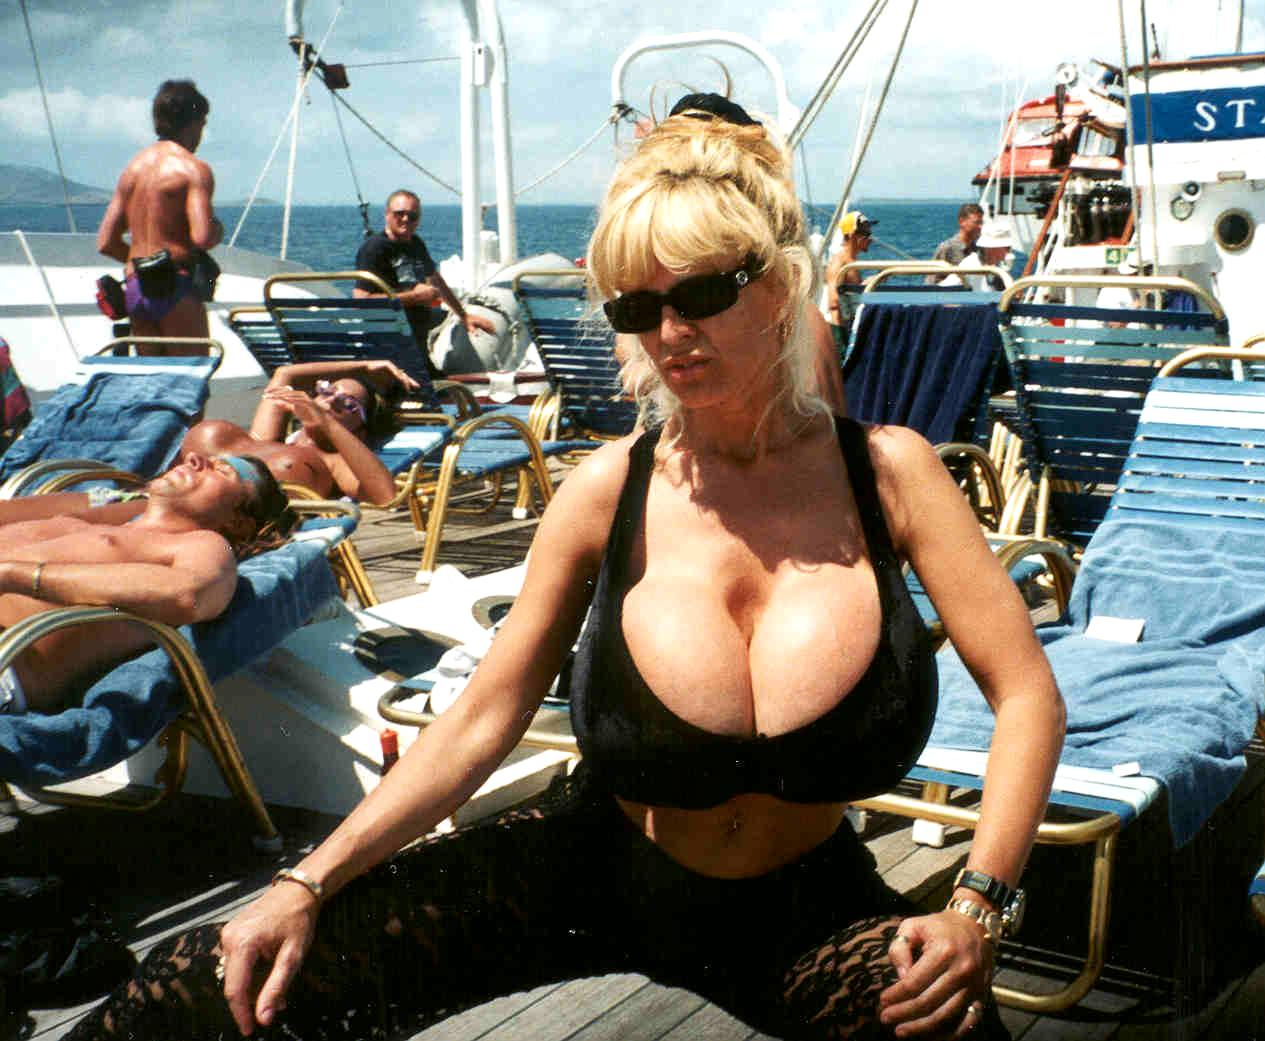 Minka video boob cruise